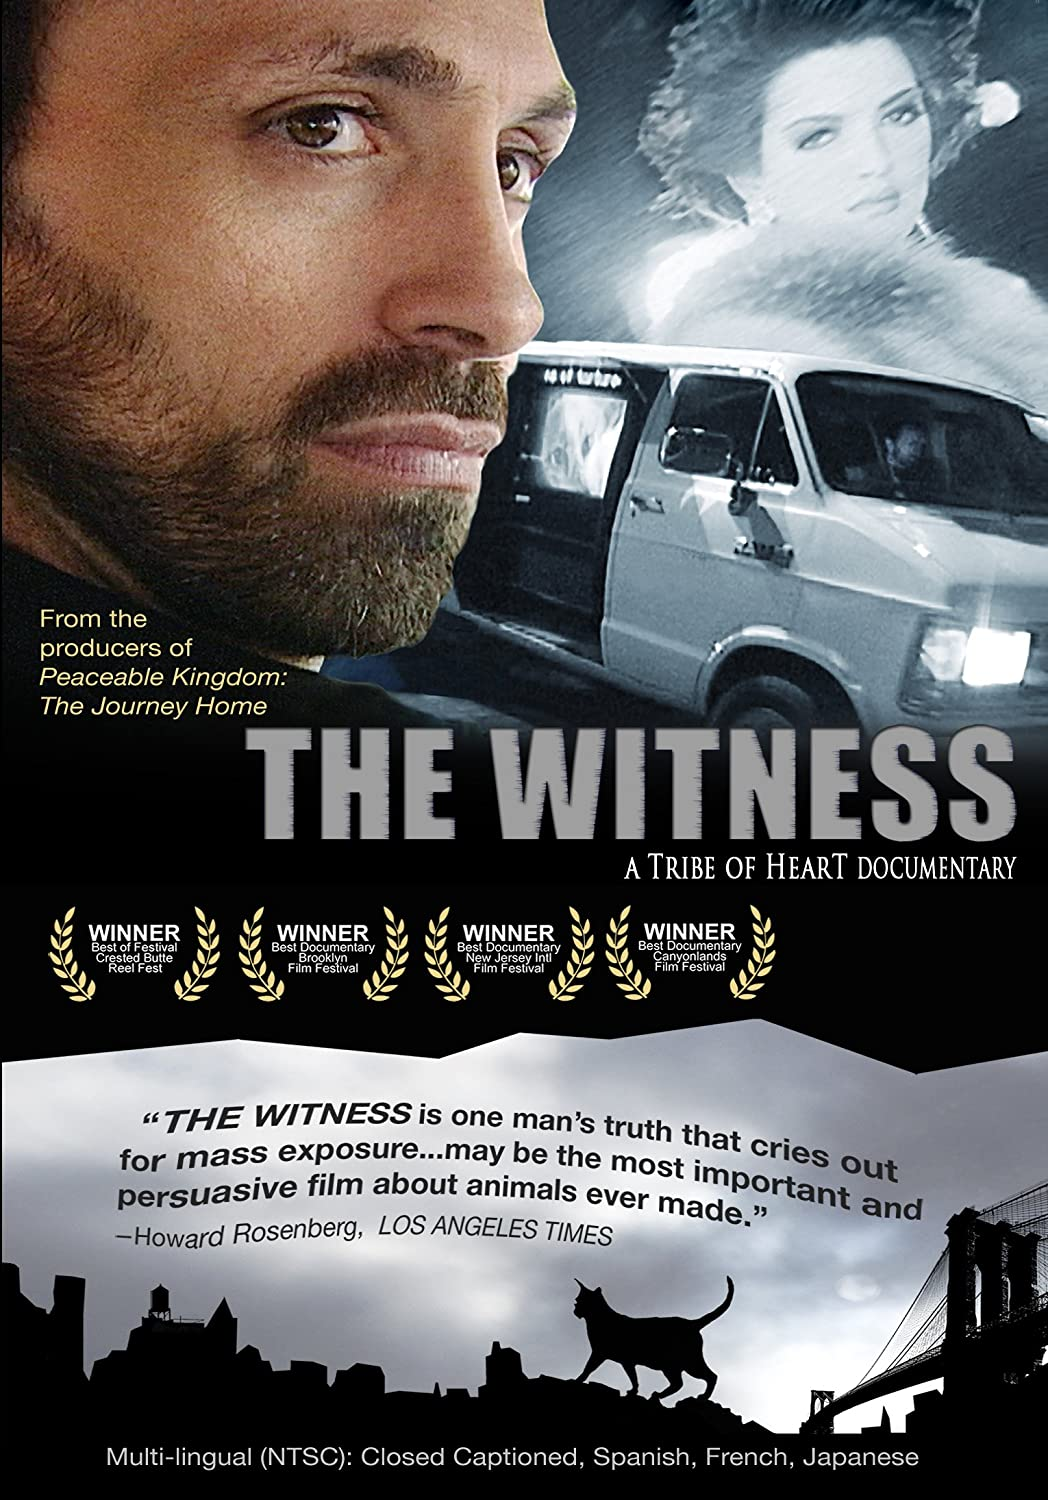 Amazon.com: The Witness: A Tribe of Heart Documentary: Jenny Stein, James LaVeck: Movies & TV